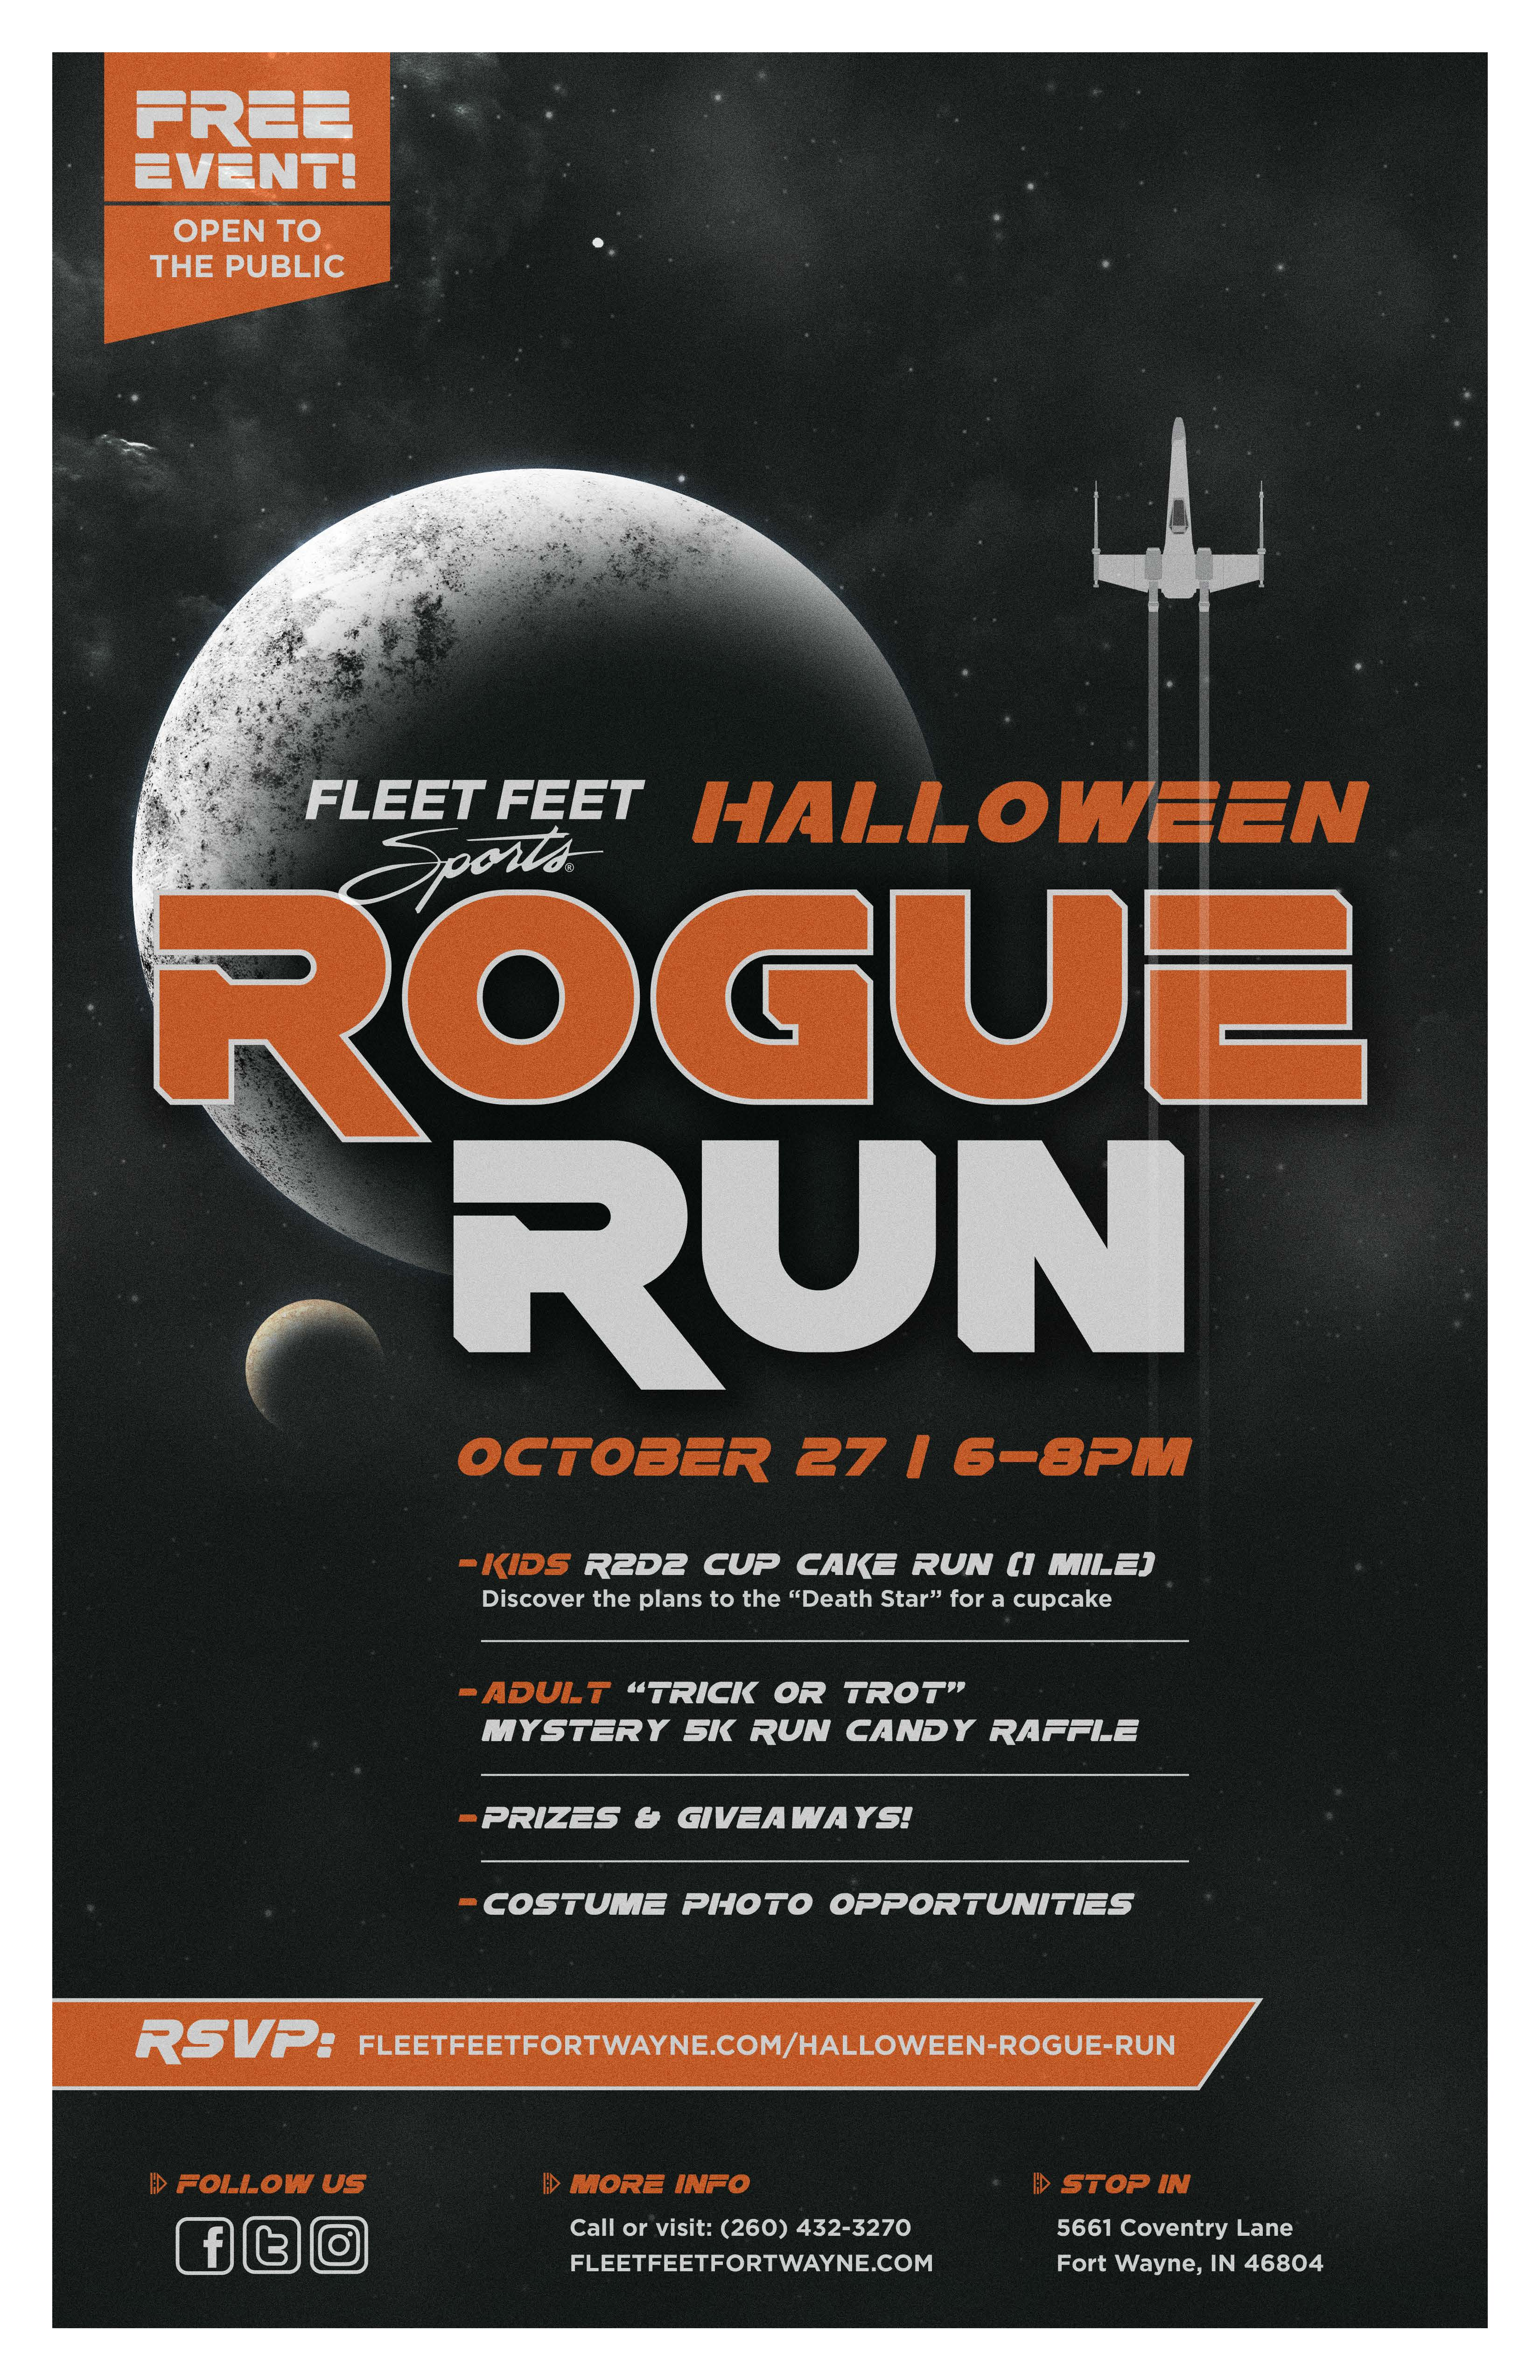 Fleet Feet Sports Fort Wayne Rogue Run Halloween Fun Run Poster